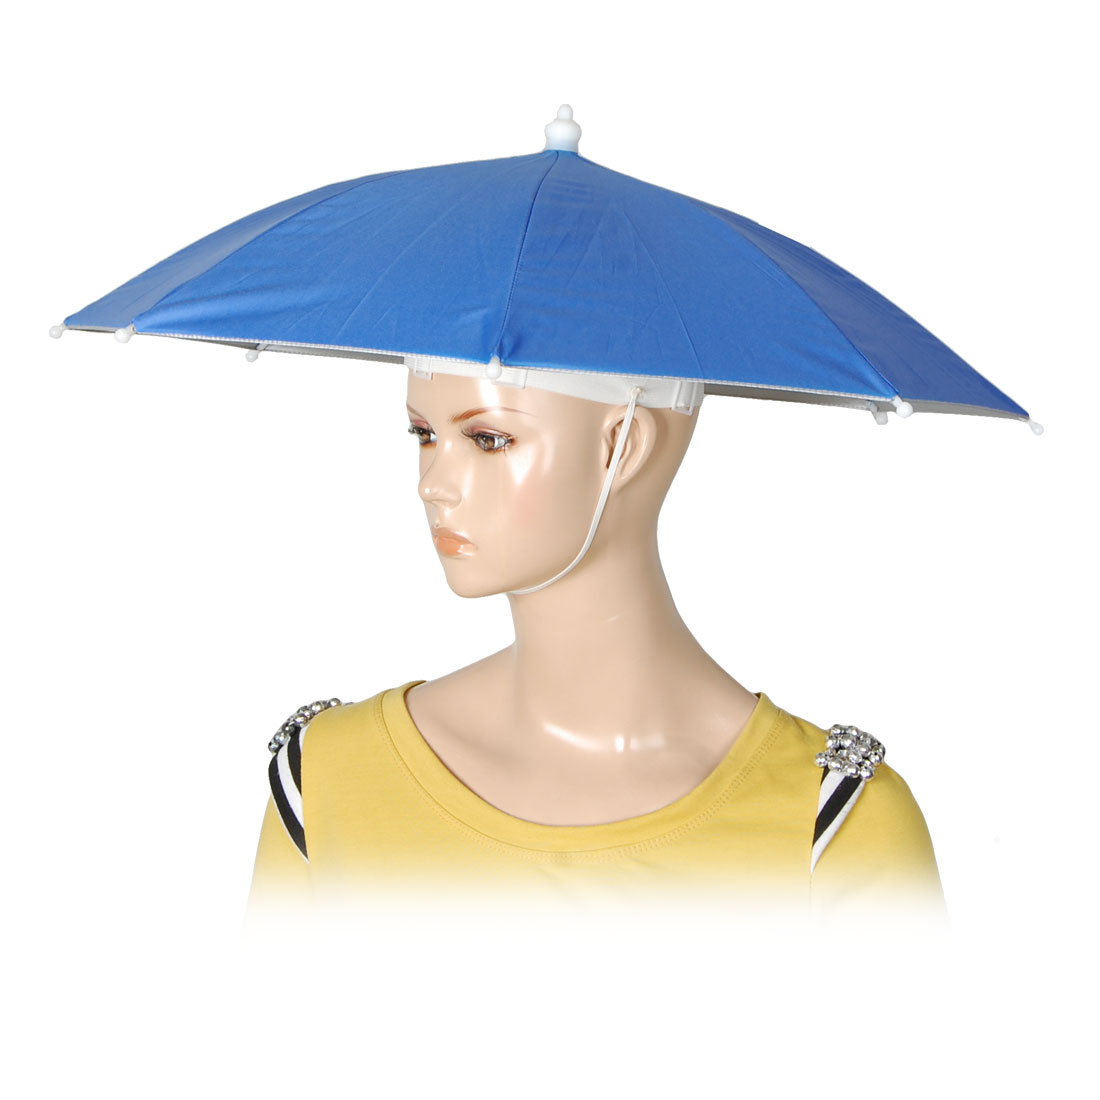 Portable Blue Outdoor Sports Fishing Umbrella Hat Headwear